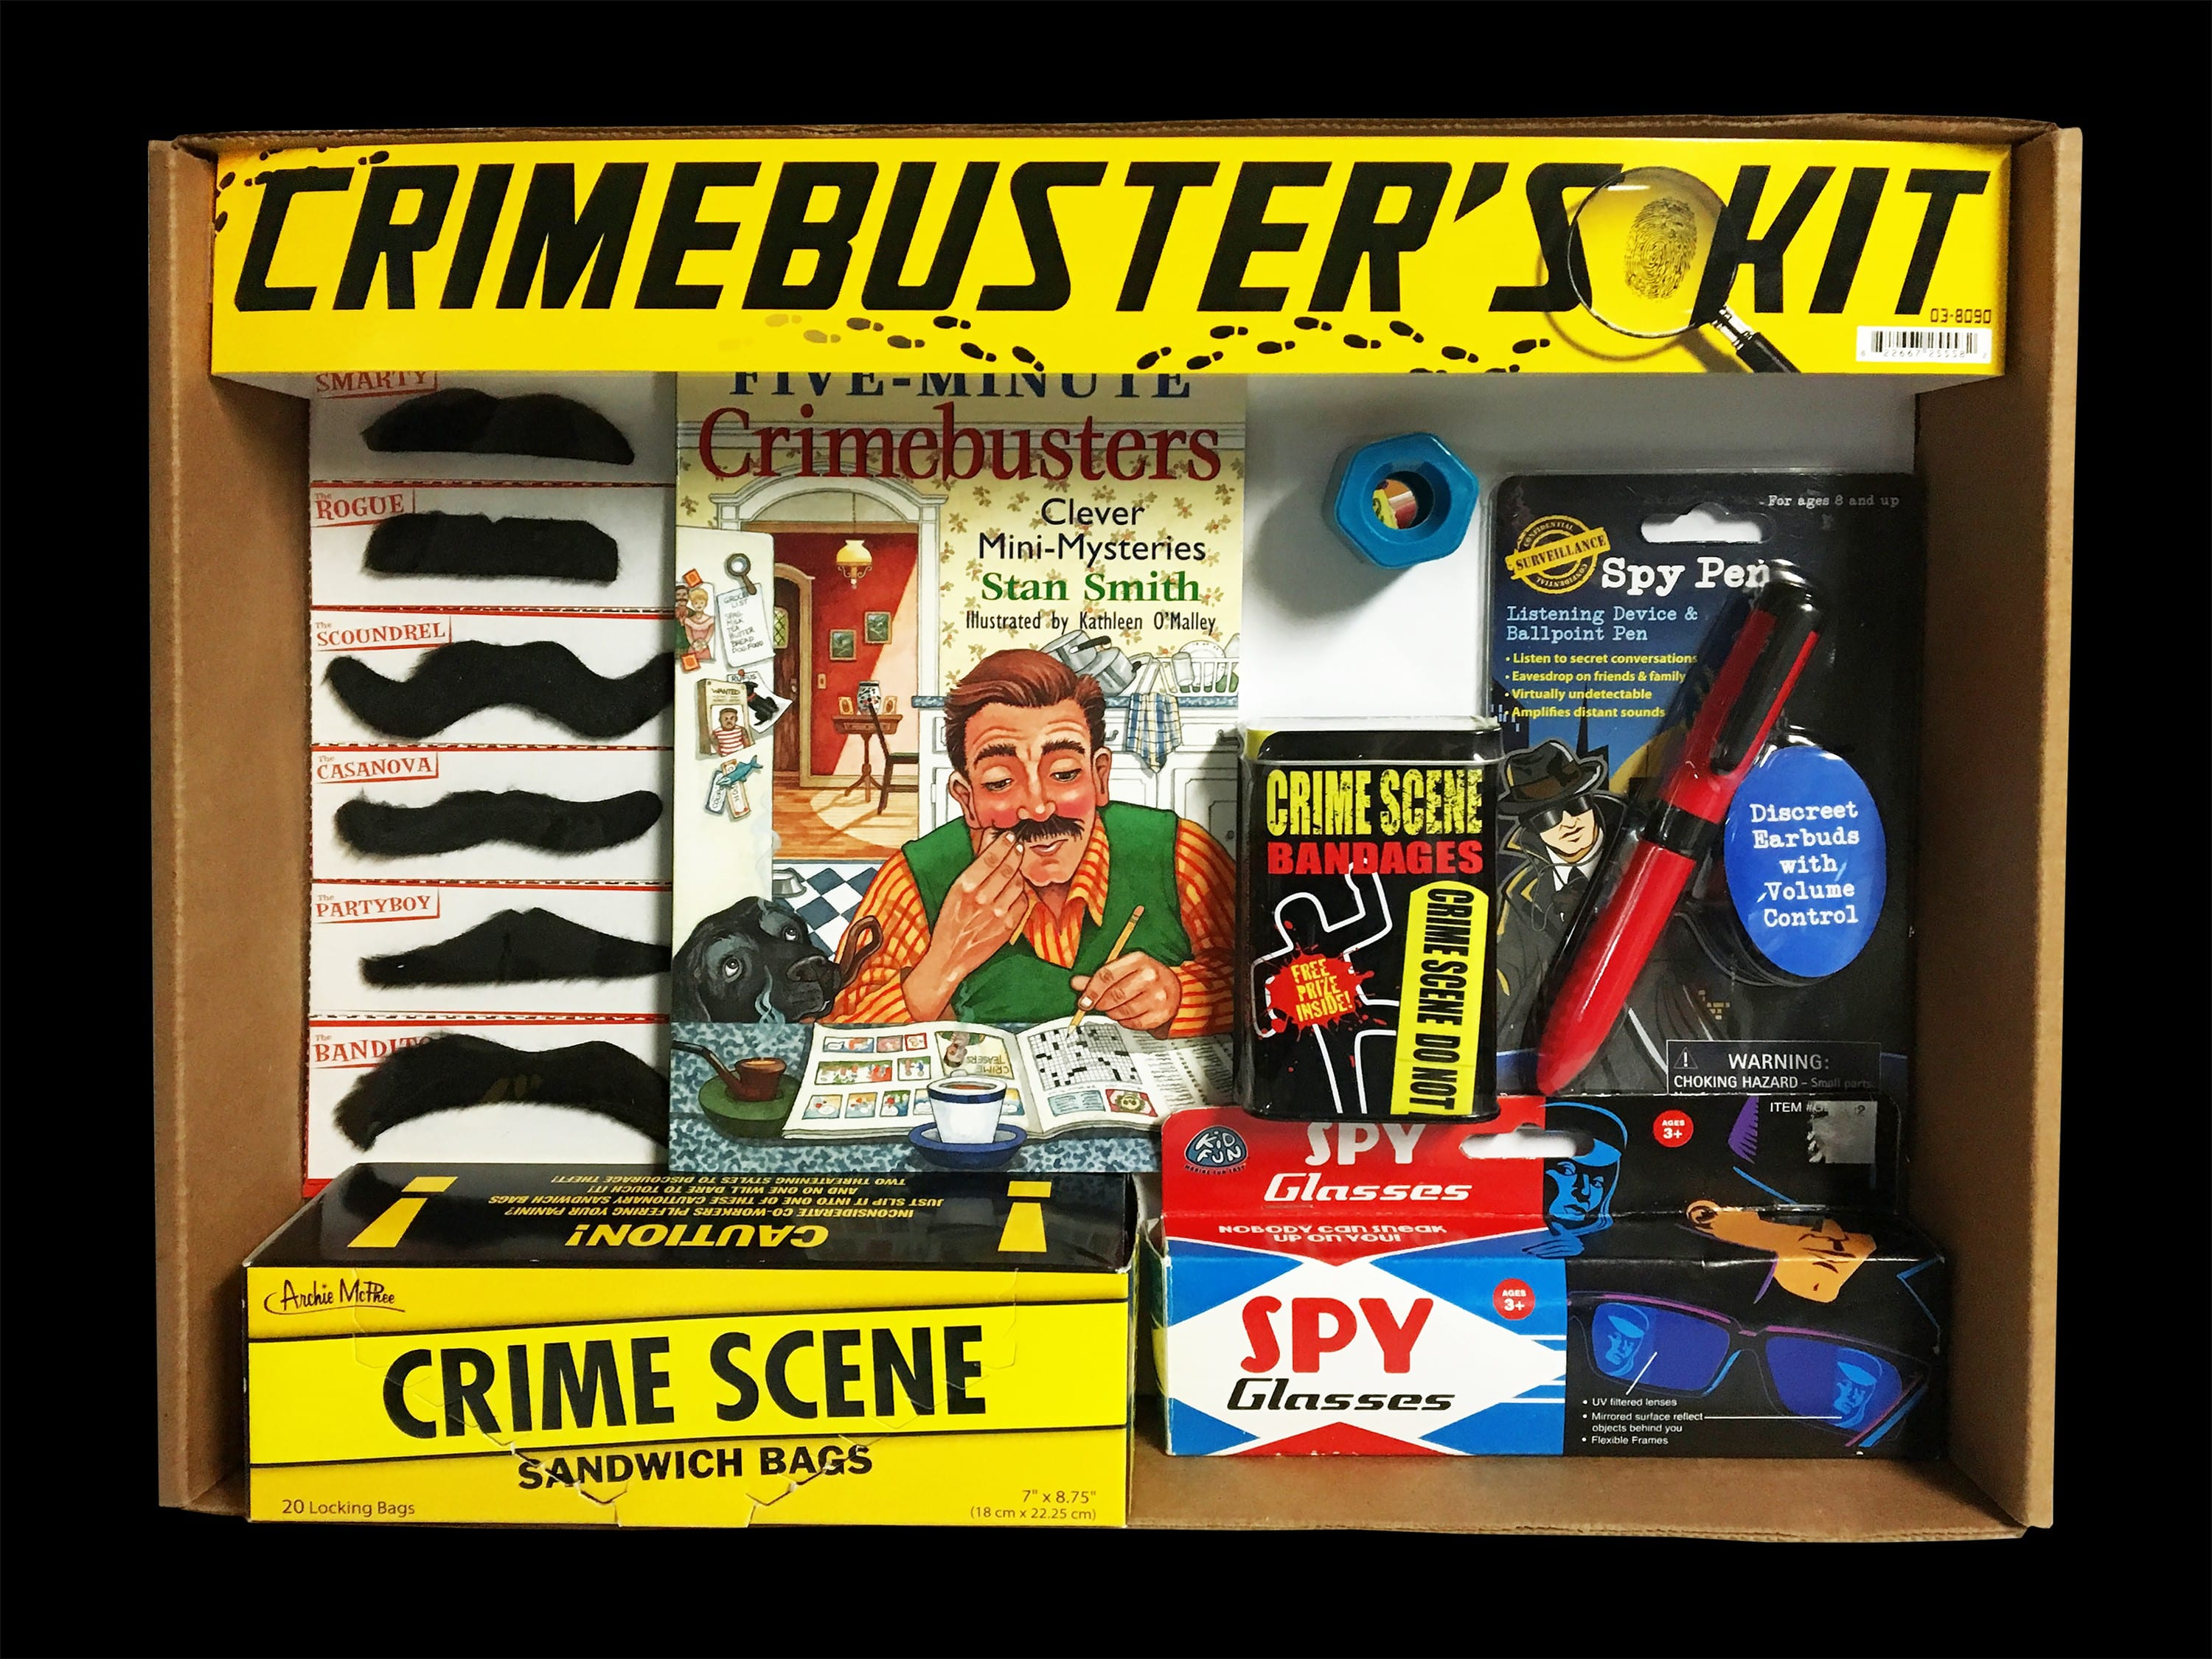 Crimebuster's Kit